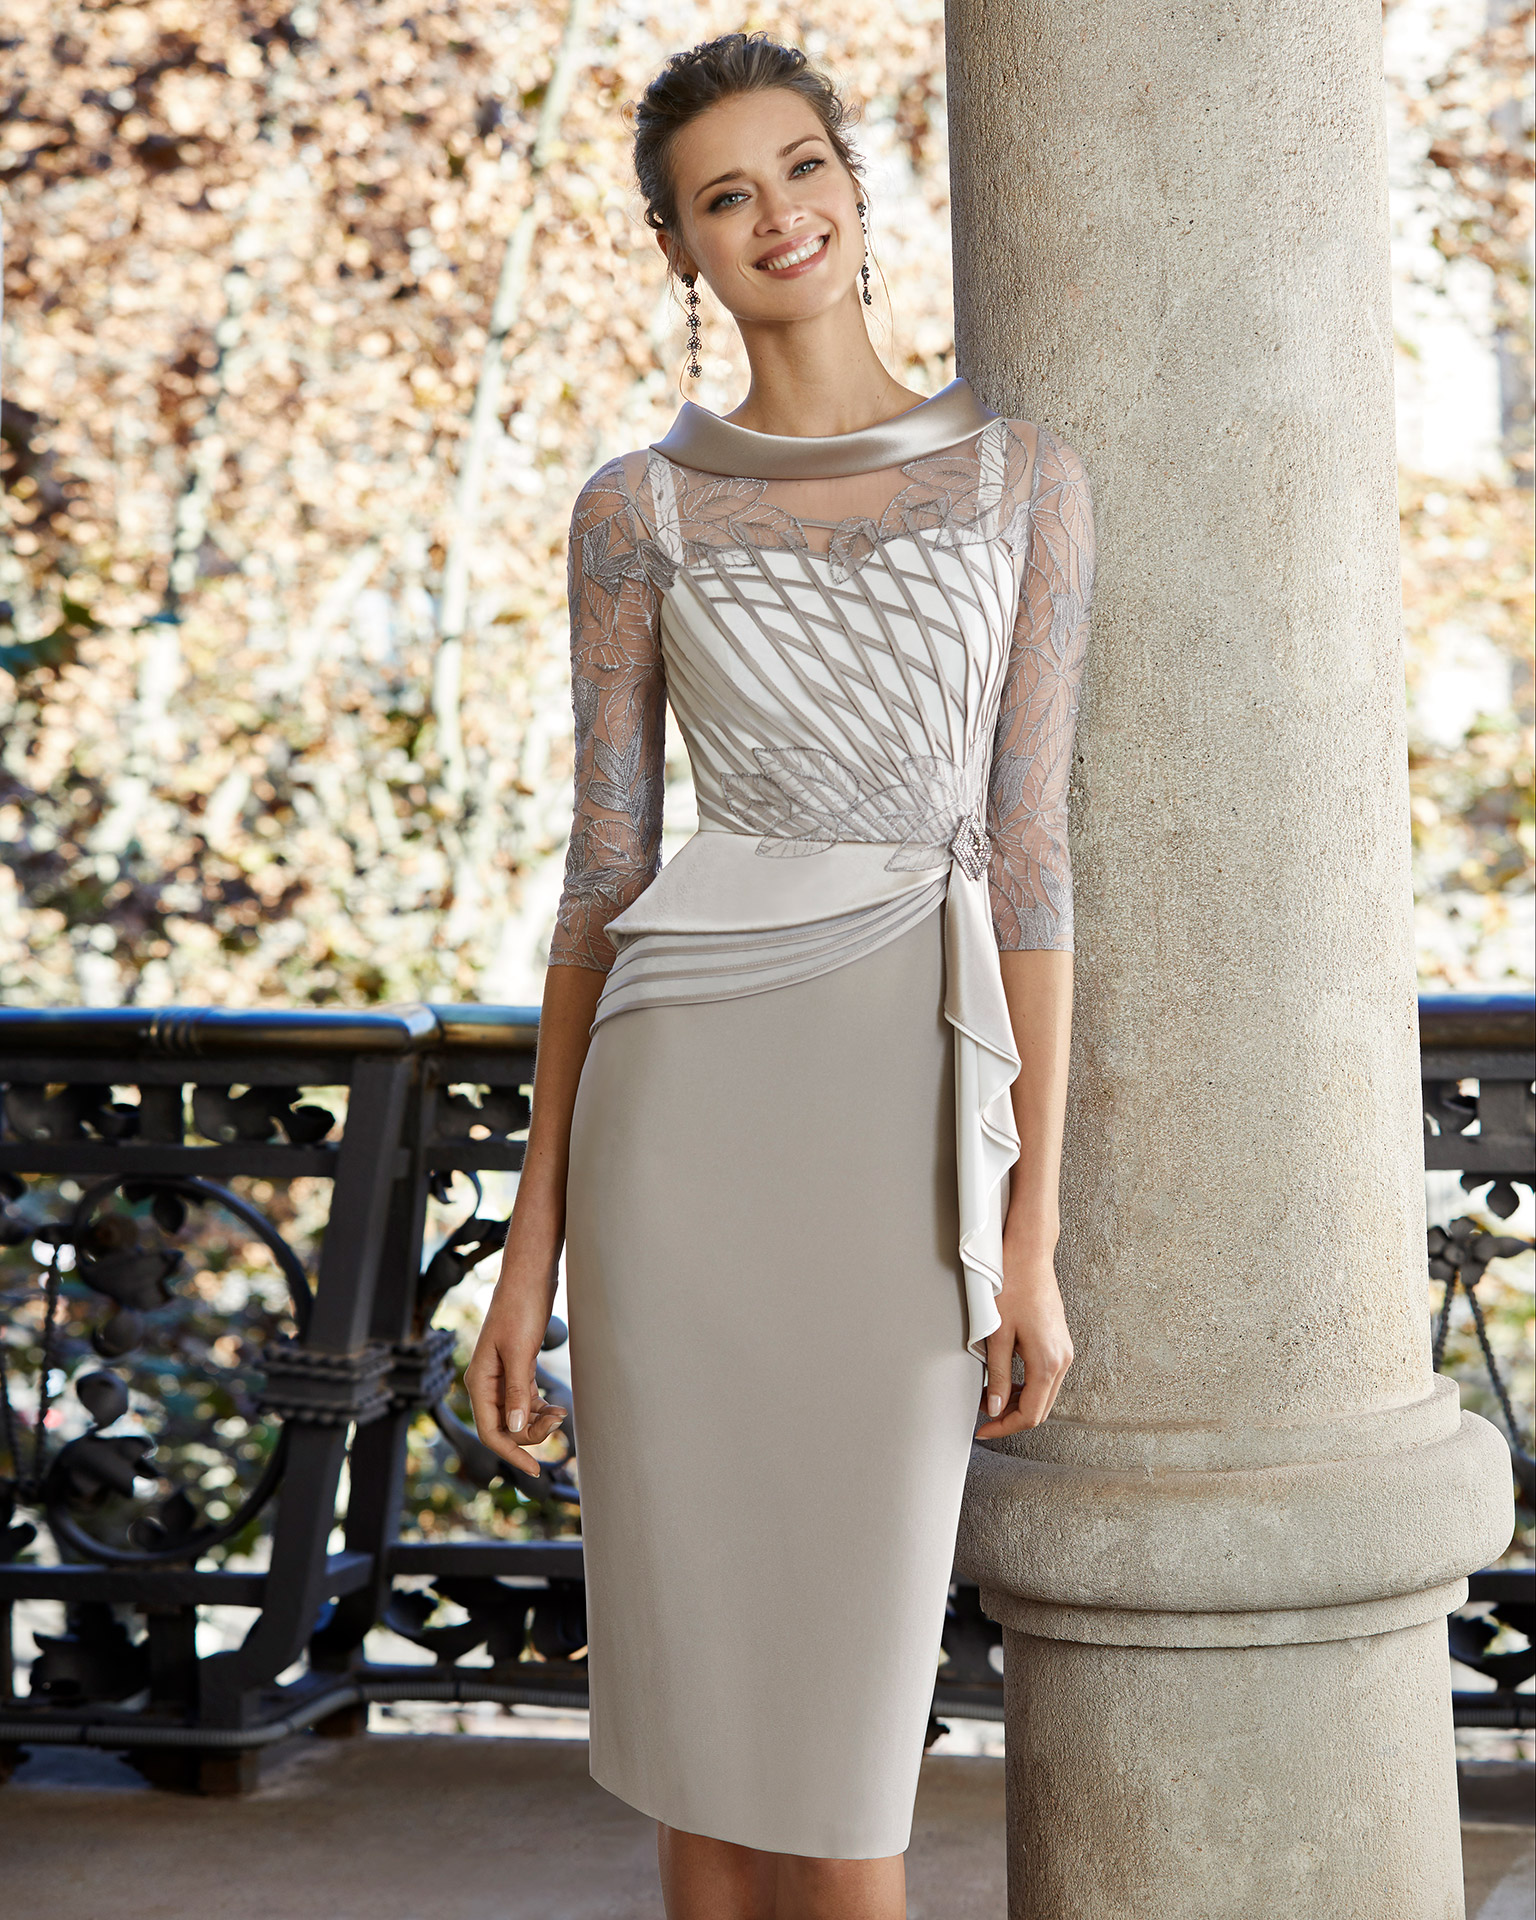 Short cocktail dress in crepe sateen with lace on the bodice. Bateau neckline with three-quarter sleeves with lace and beaded brooch at the waist. 2020 COUTURE CLUB Collection.